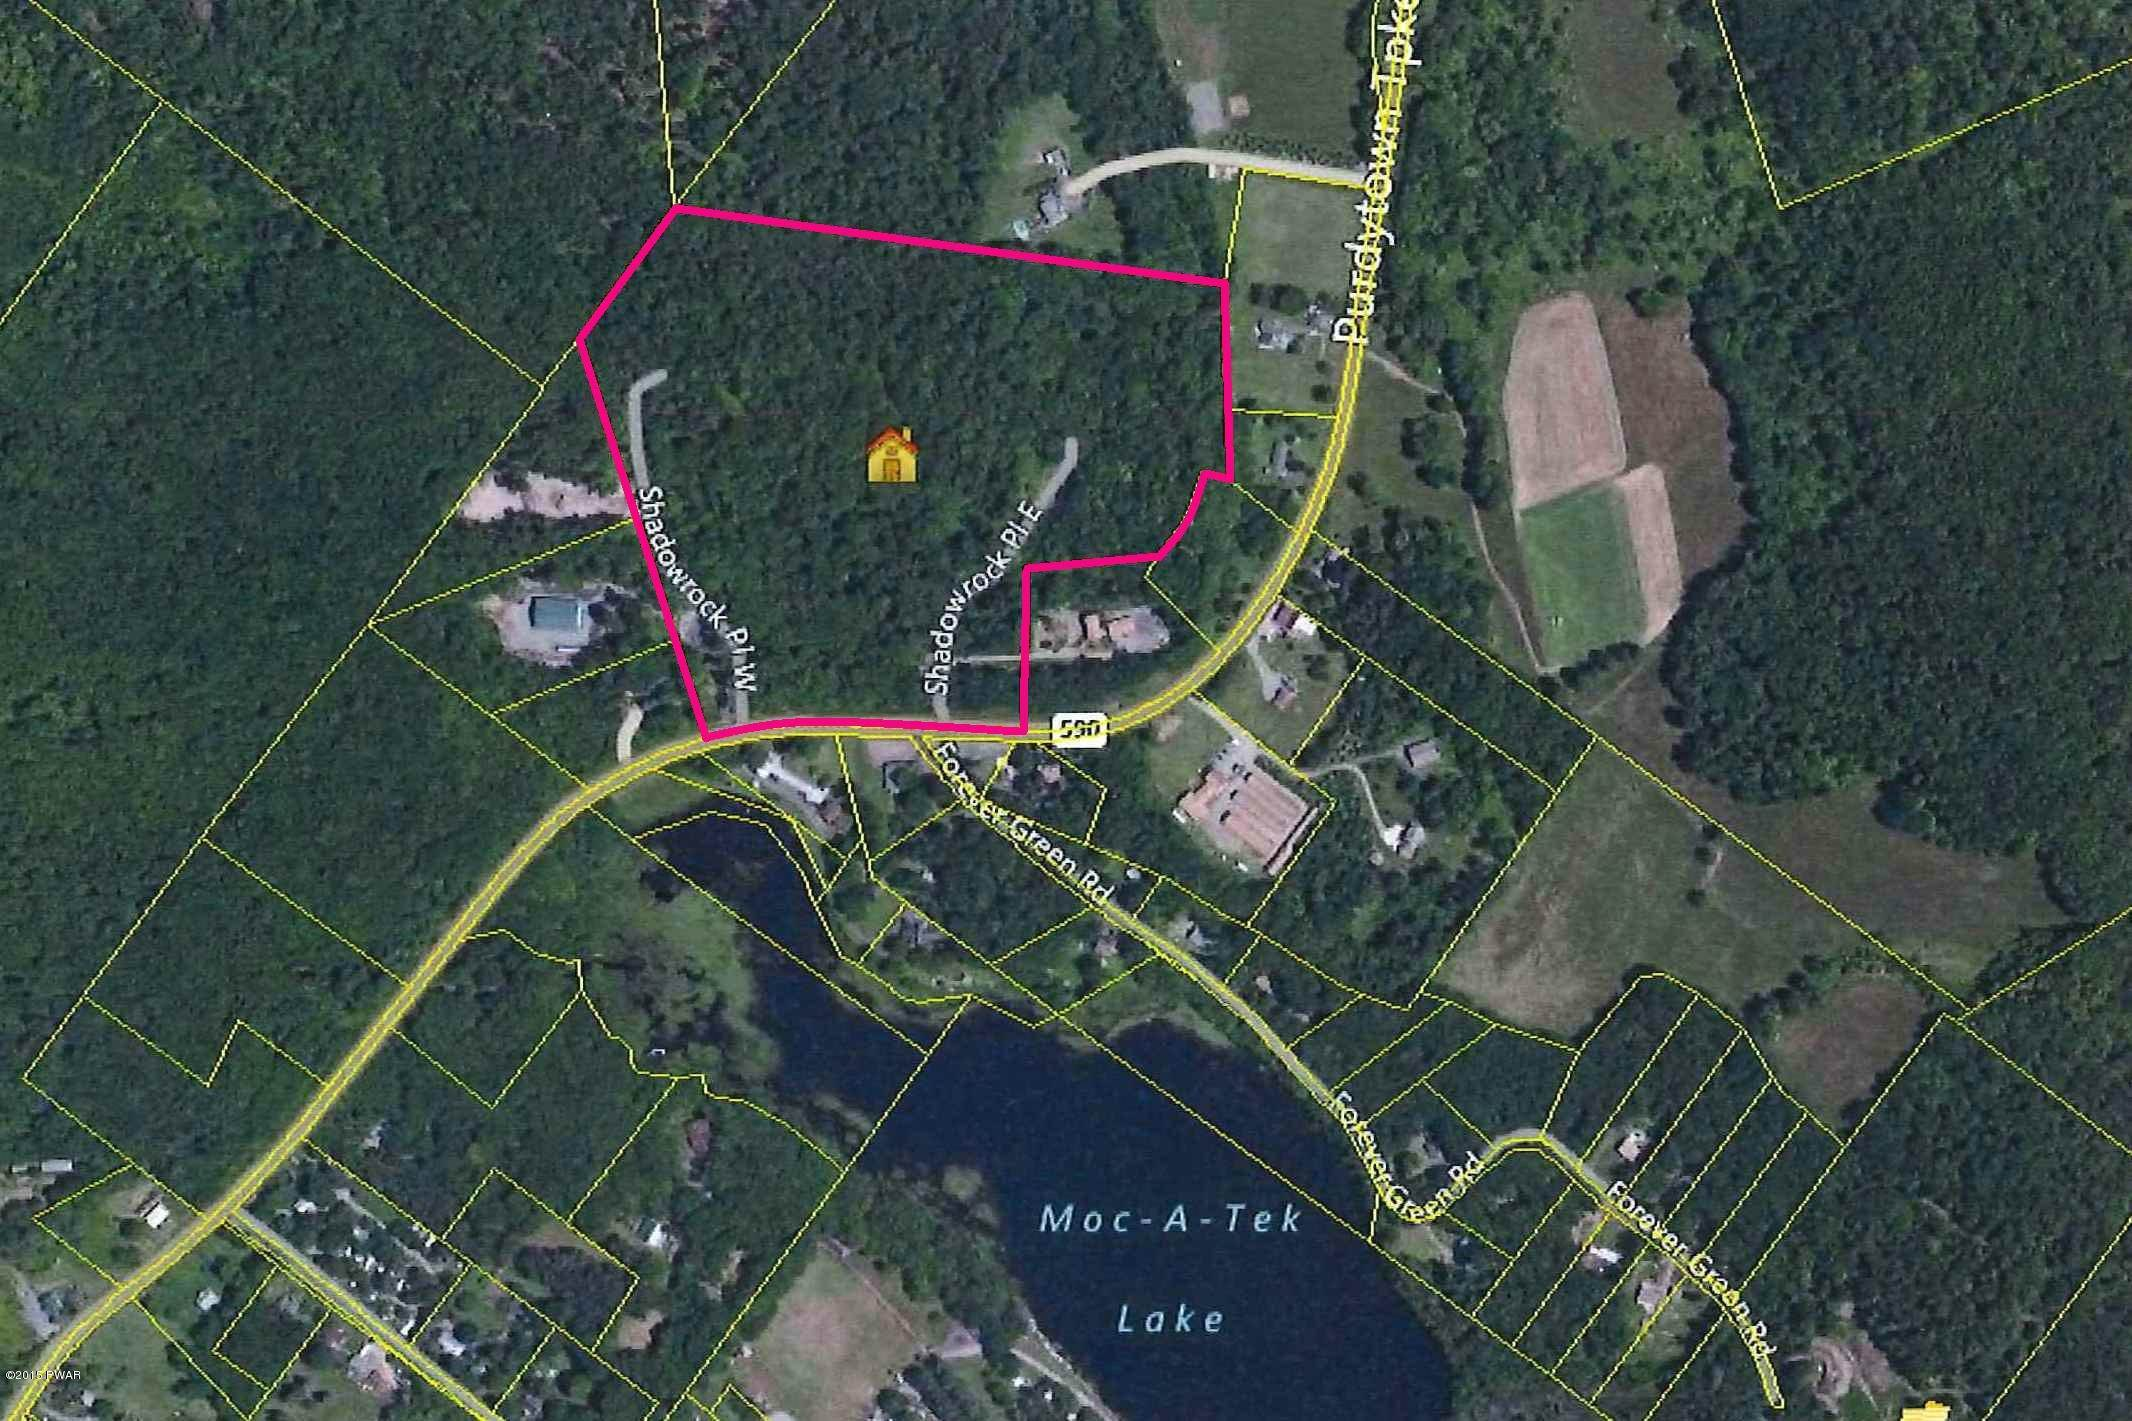 Land for Sale at Purdytown Tpke Lakeville, Pennsylvania 18438 United States